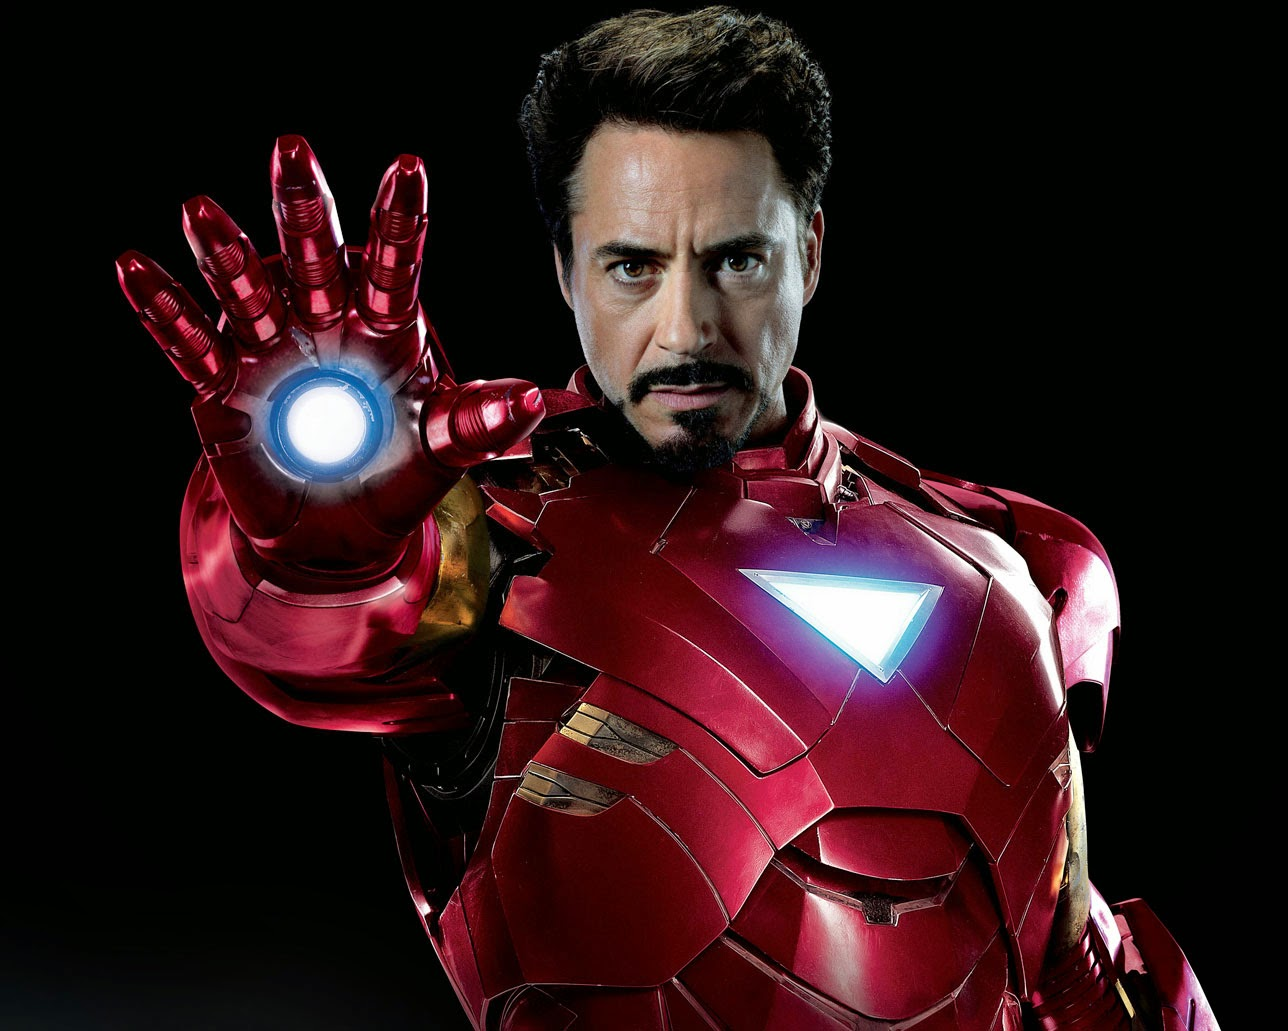 Tony Start as Iron Man